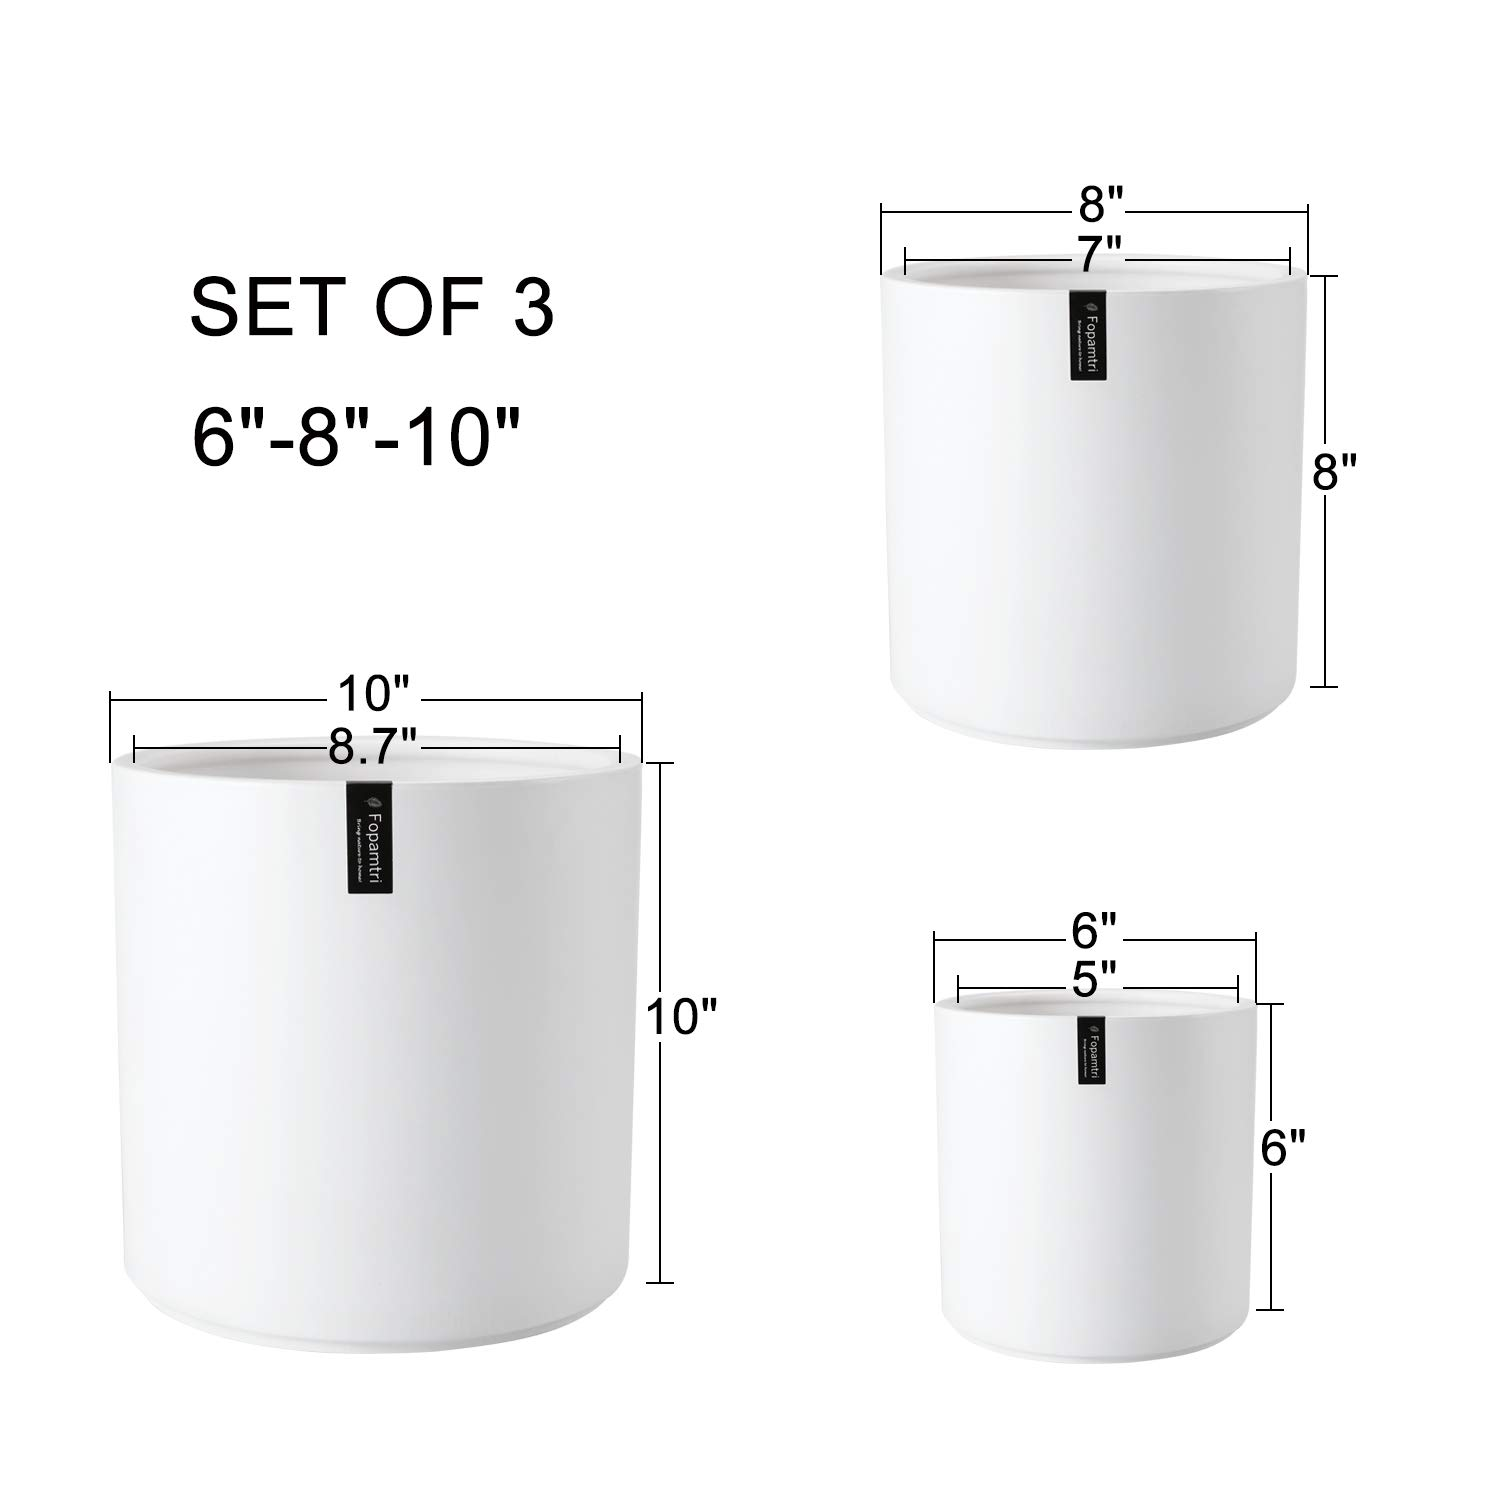 Plant Pot by Fopamtri Matte White Ceramic Planter for Indoor Outdoor Plants Flowers 8 Inch Large Modern Cylinder Flower Pot with Drainage Hole and Plug,Full Glazed Finish